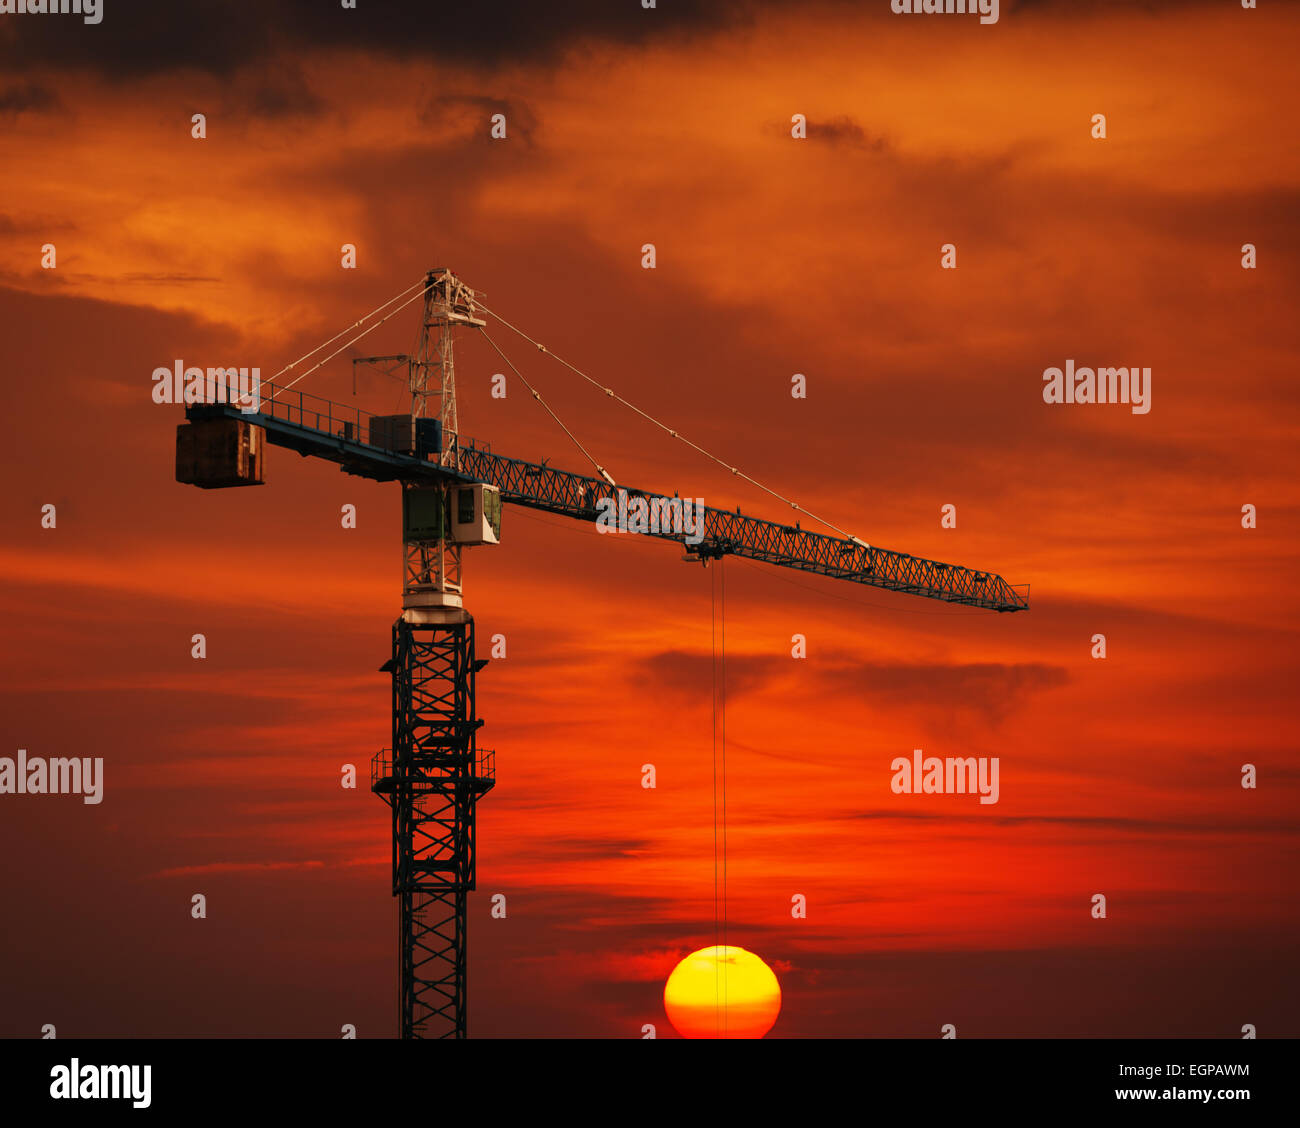 Trick shot appears to show the sun suspended from the cables of a construction crane with a red sky in the background. - Stock Image